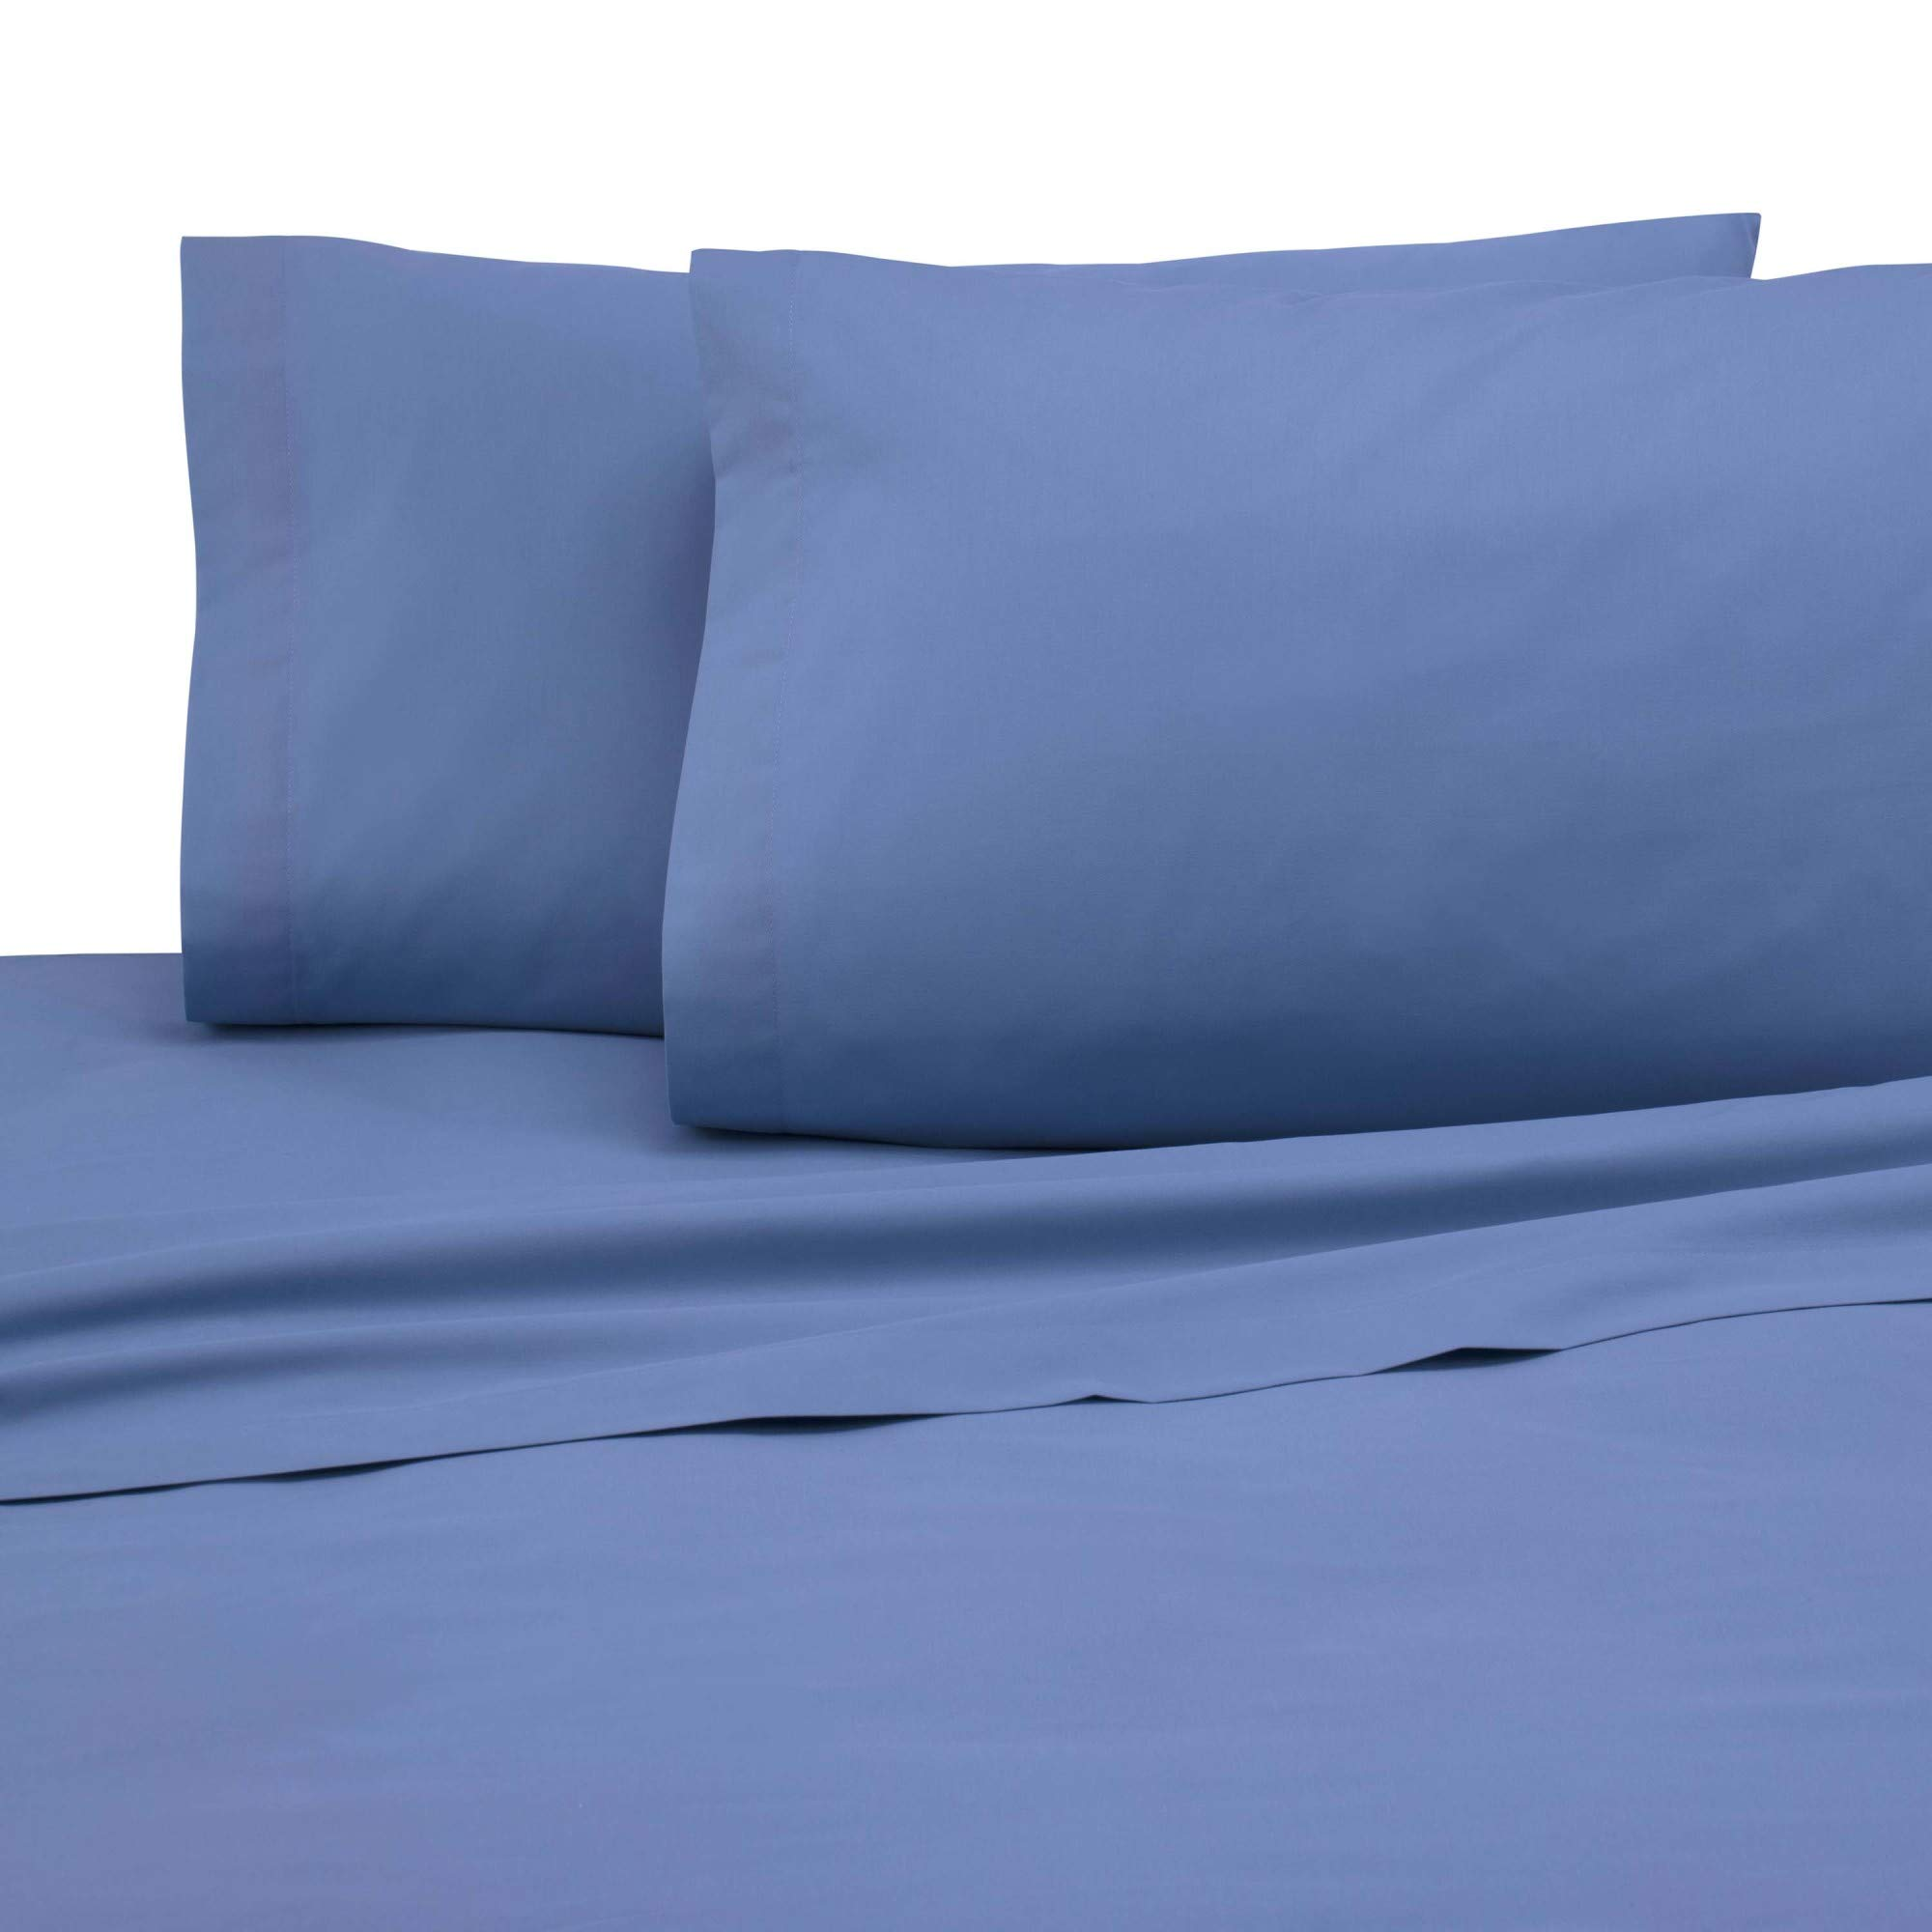 Martex Cotton Rich Pillowcase Pair - Brushed Cotton Blend, Super Soft Finish, Wrinkle Resistant, Quick Drying,  Bedroom, Guest Room  - 2-Piece Standard Pillowcase Pair, Ceil Blue